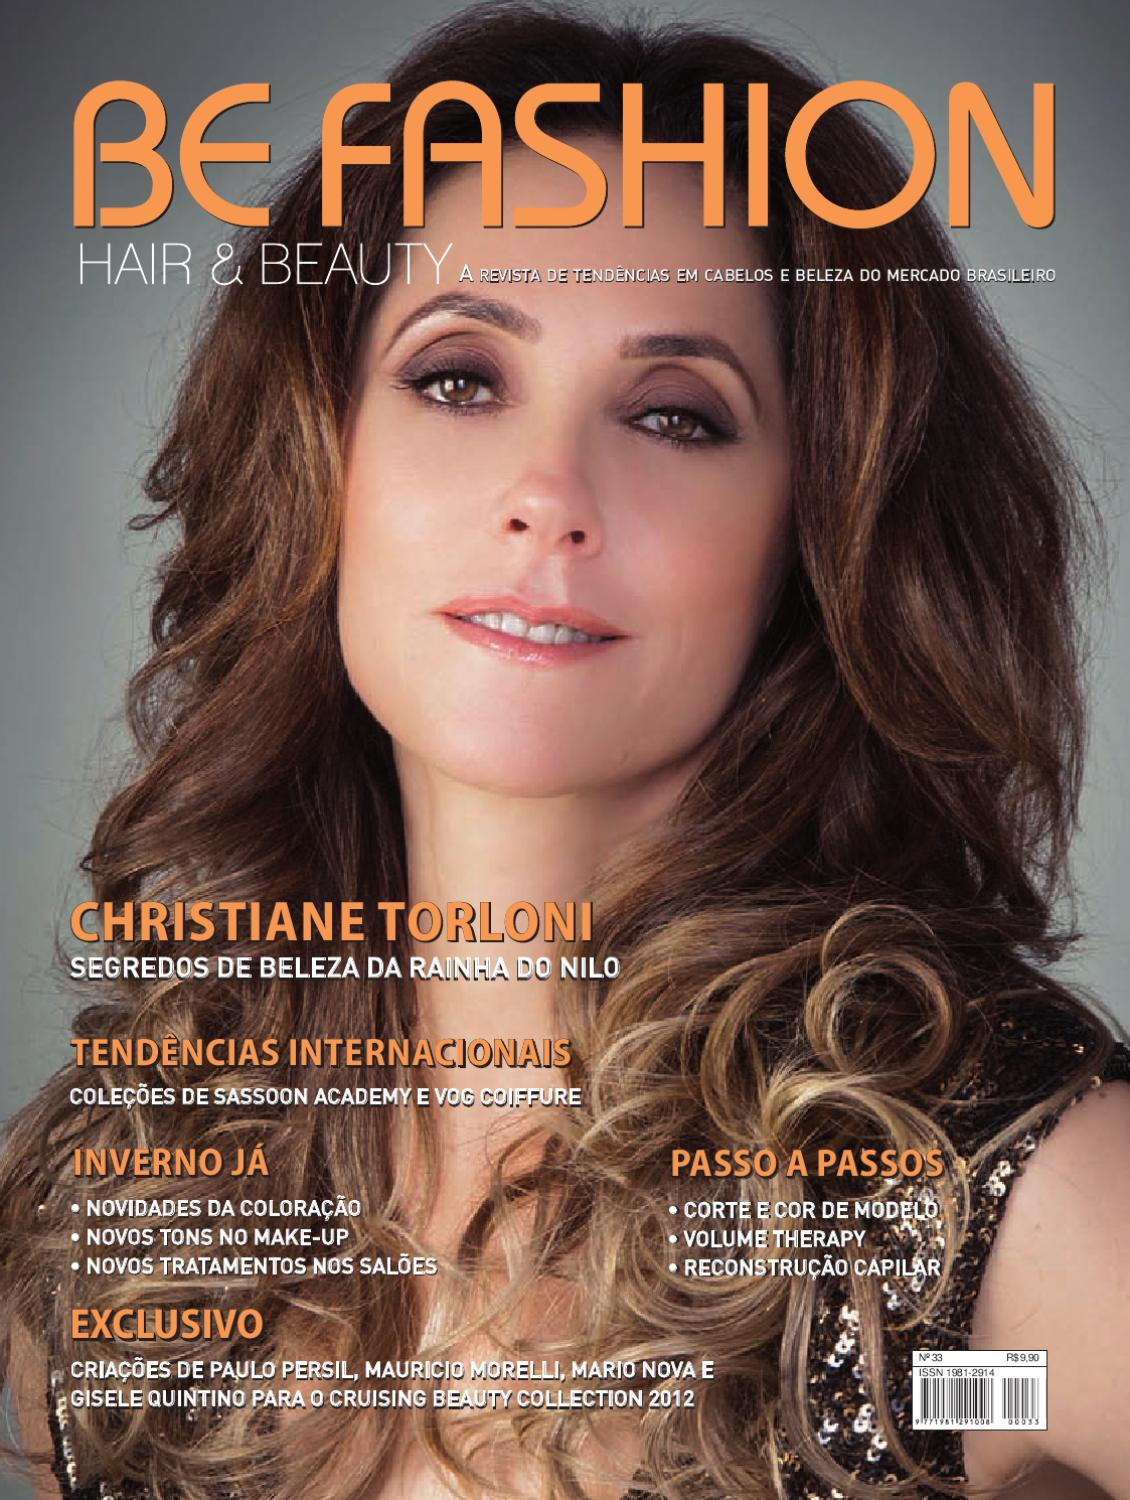 Revista Befashion Ed 33 By Grupo Eletrolar Issuu